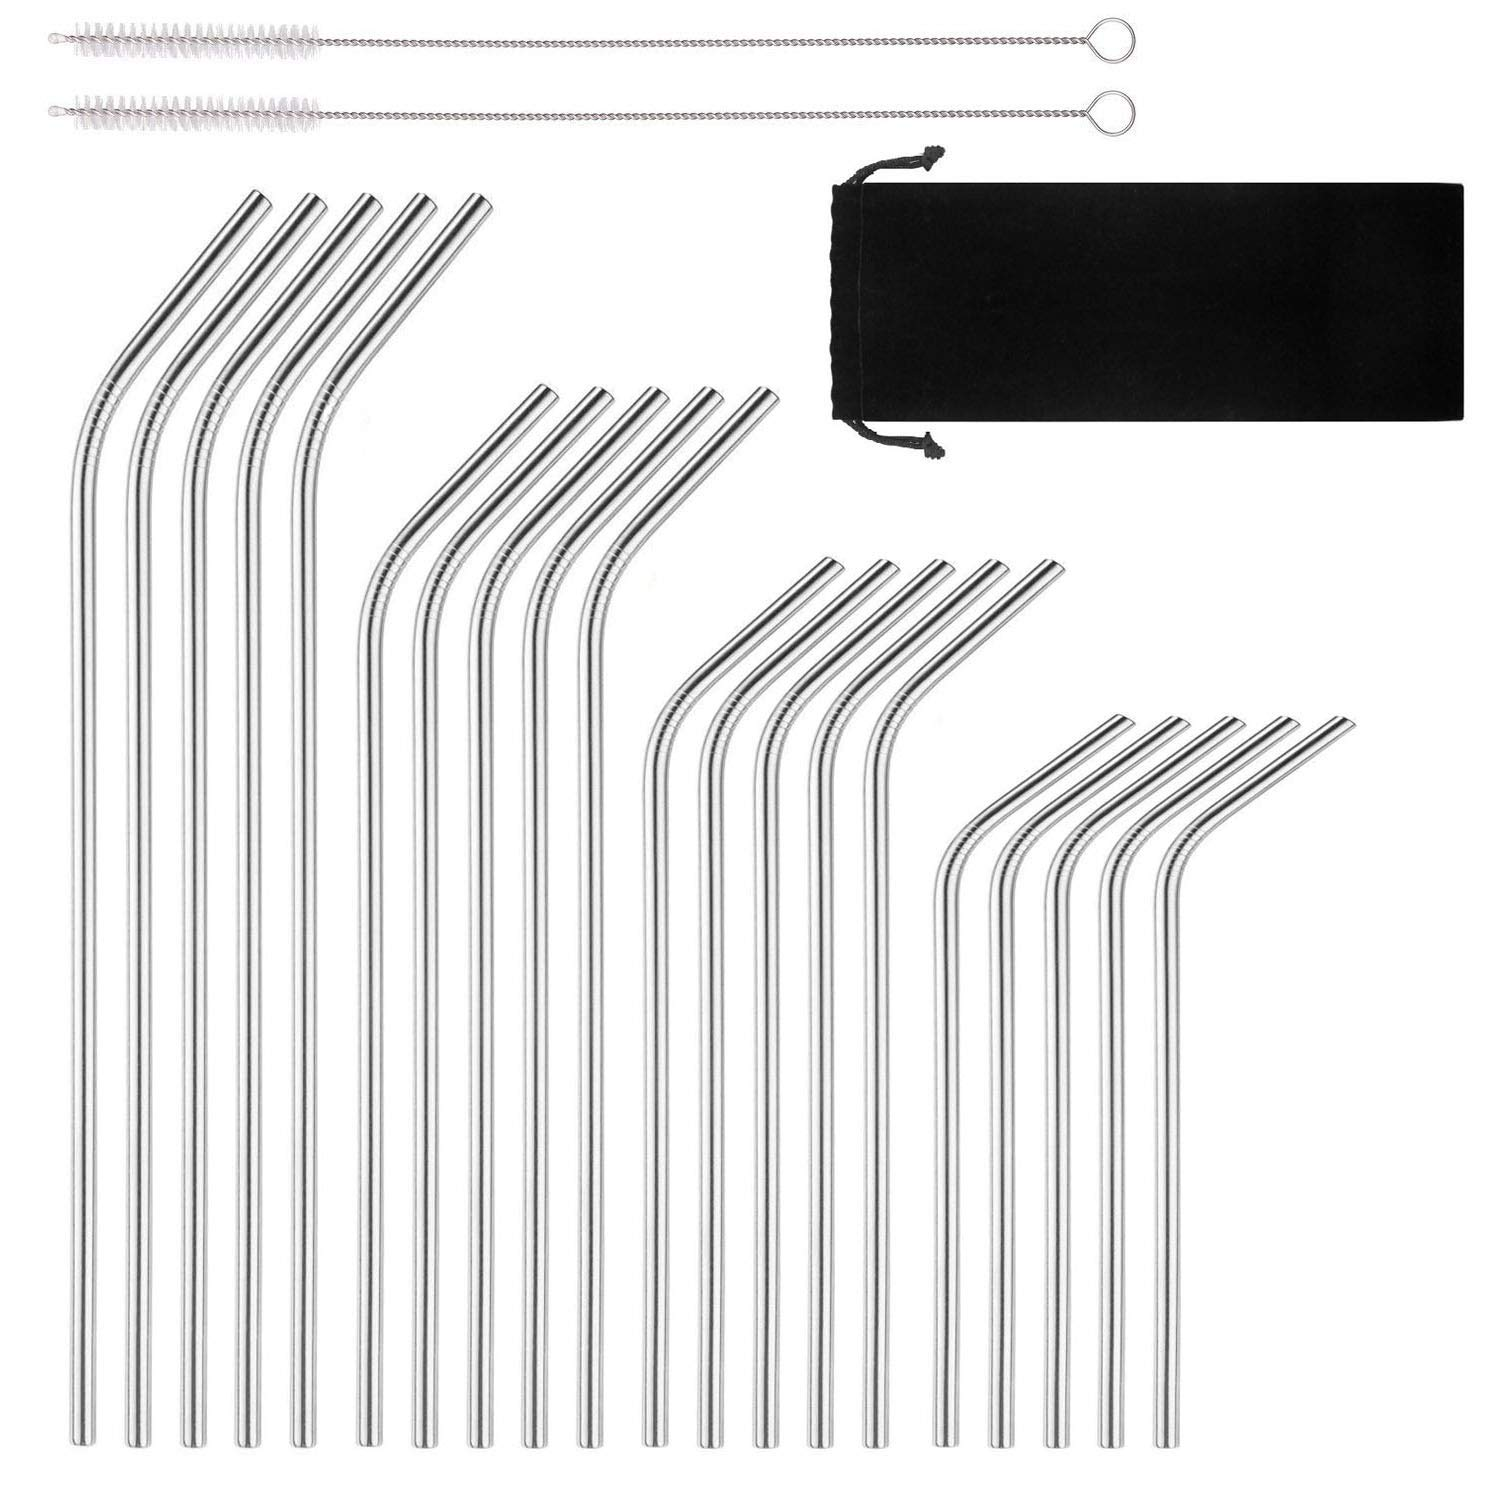 Reusable Stainless Steel Drinking Straws, 20 Pcs 4 Size - 6.3'' 7.1'' 8.5'' 10.5'', BPA Free Long Short Smoothie Drinking Curved Bent Straws with 2 Brushes and Carry Bag, Fit for 10/20/30 oz Tumblers by BGMAXimum